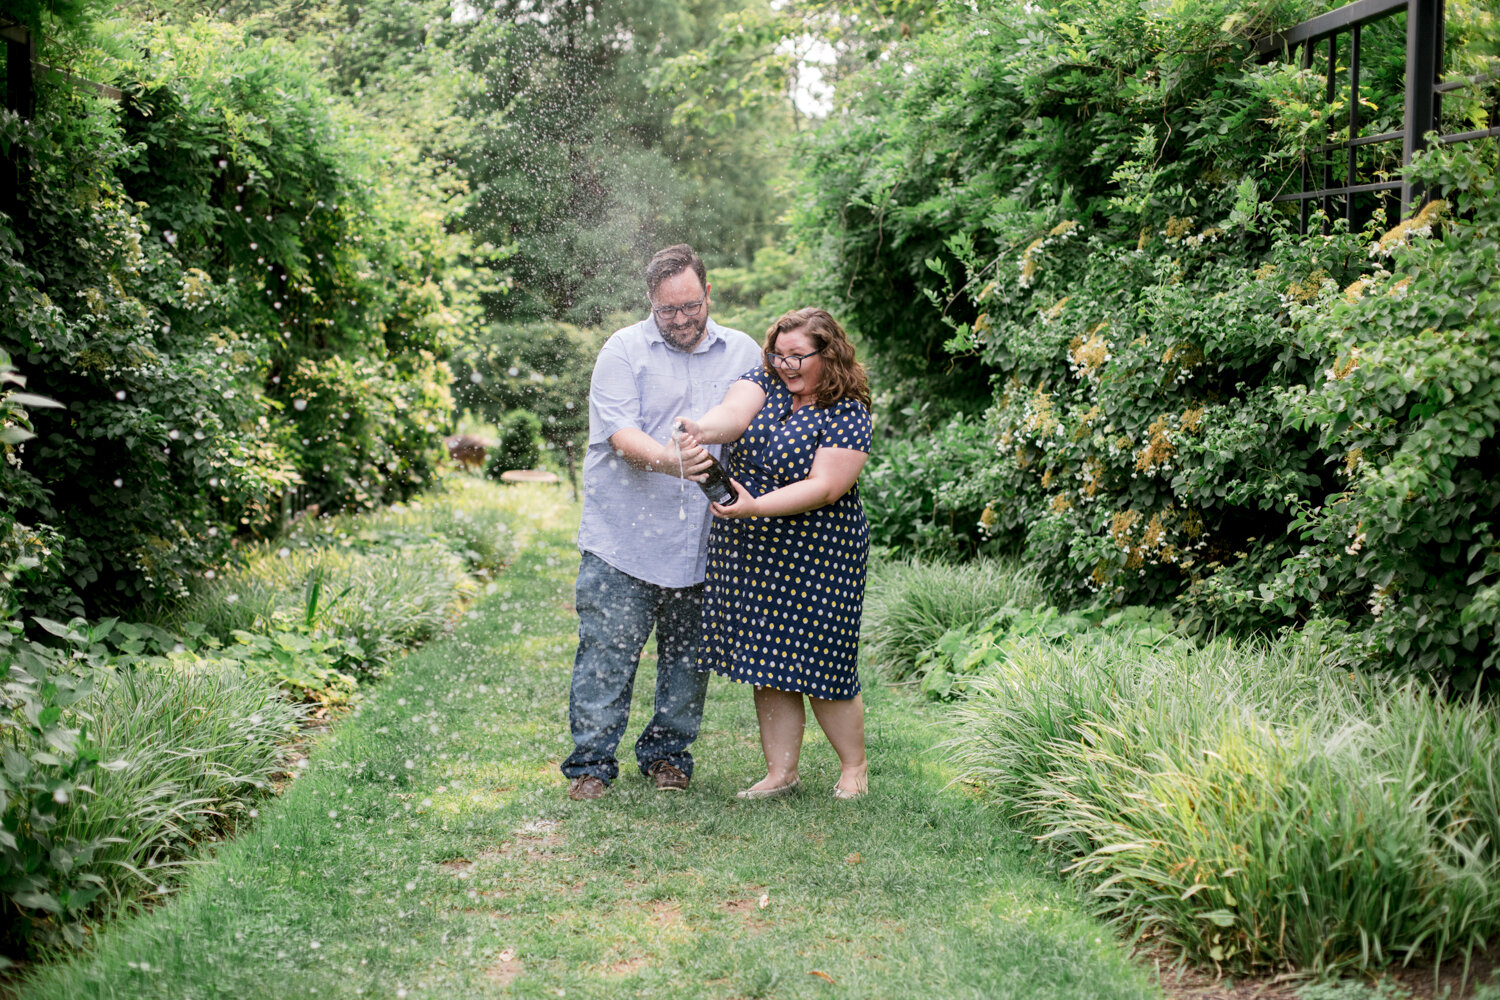 morris-arboretum-chestnut-hill-garden-engagement-session-philadelphia-wedding-photography-19.jpg